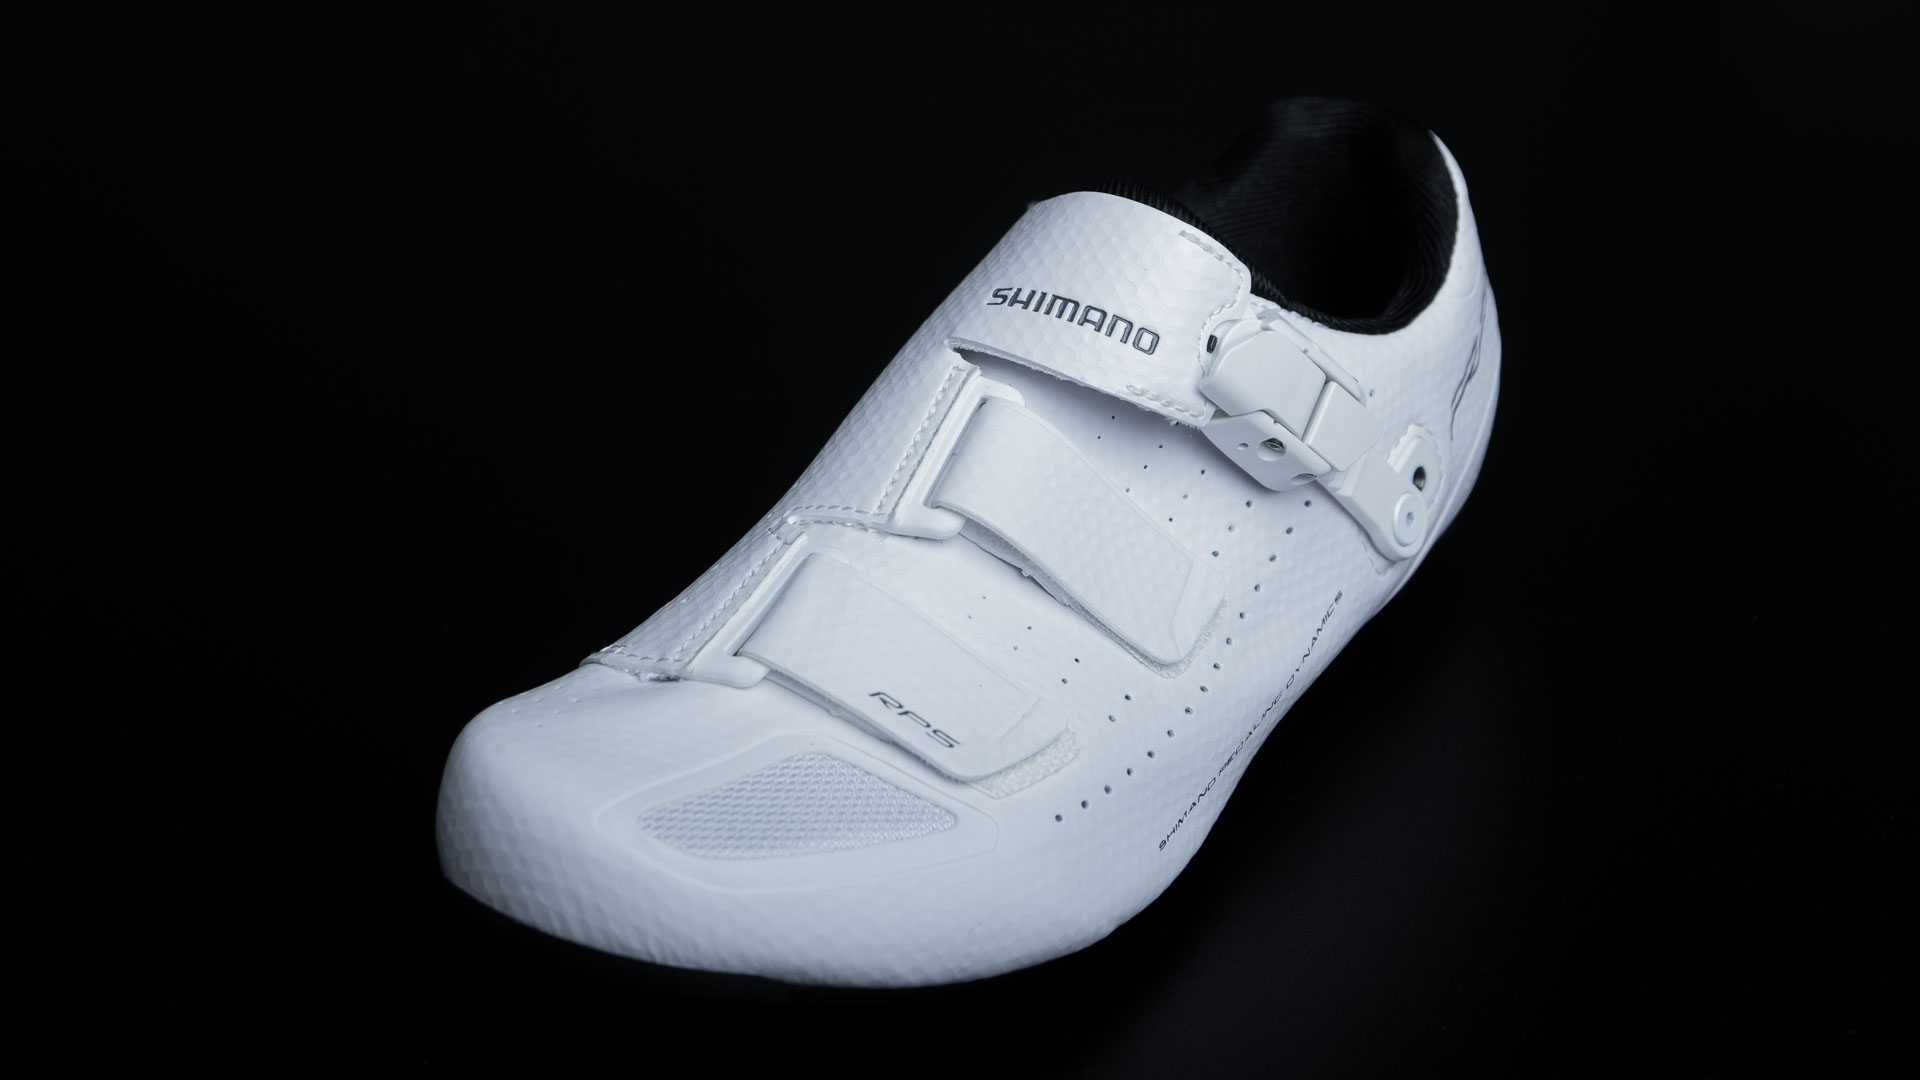 Shimano Rp Road Shoes Review